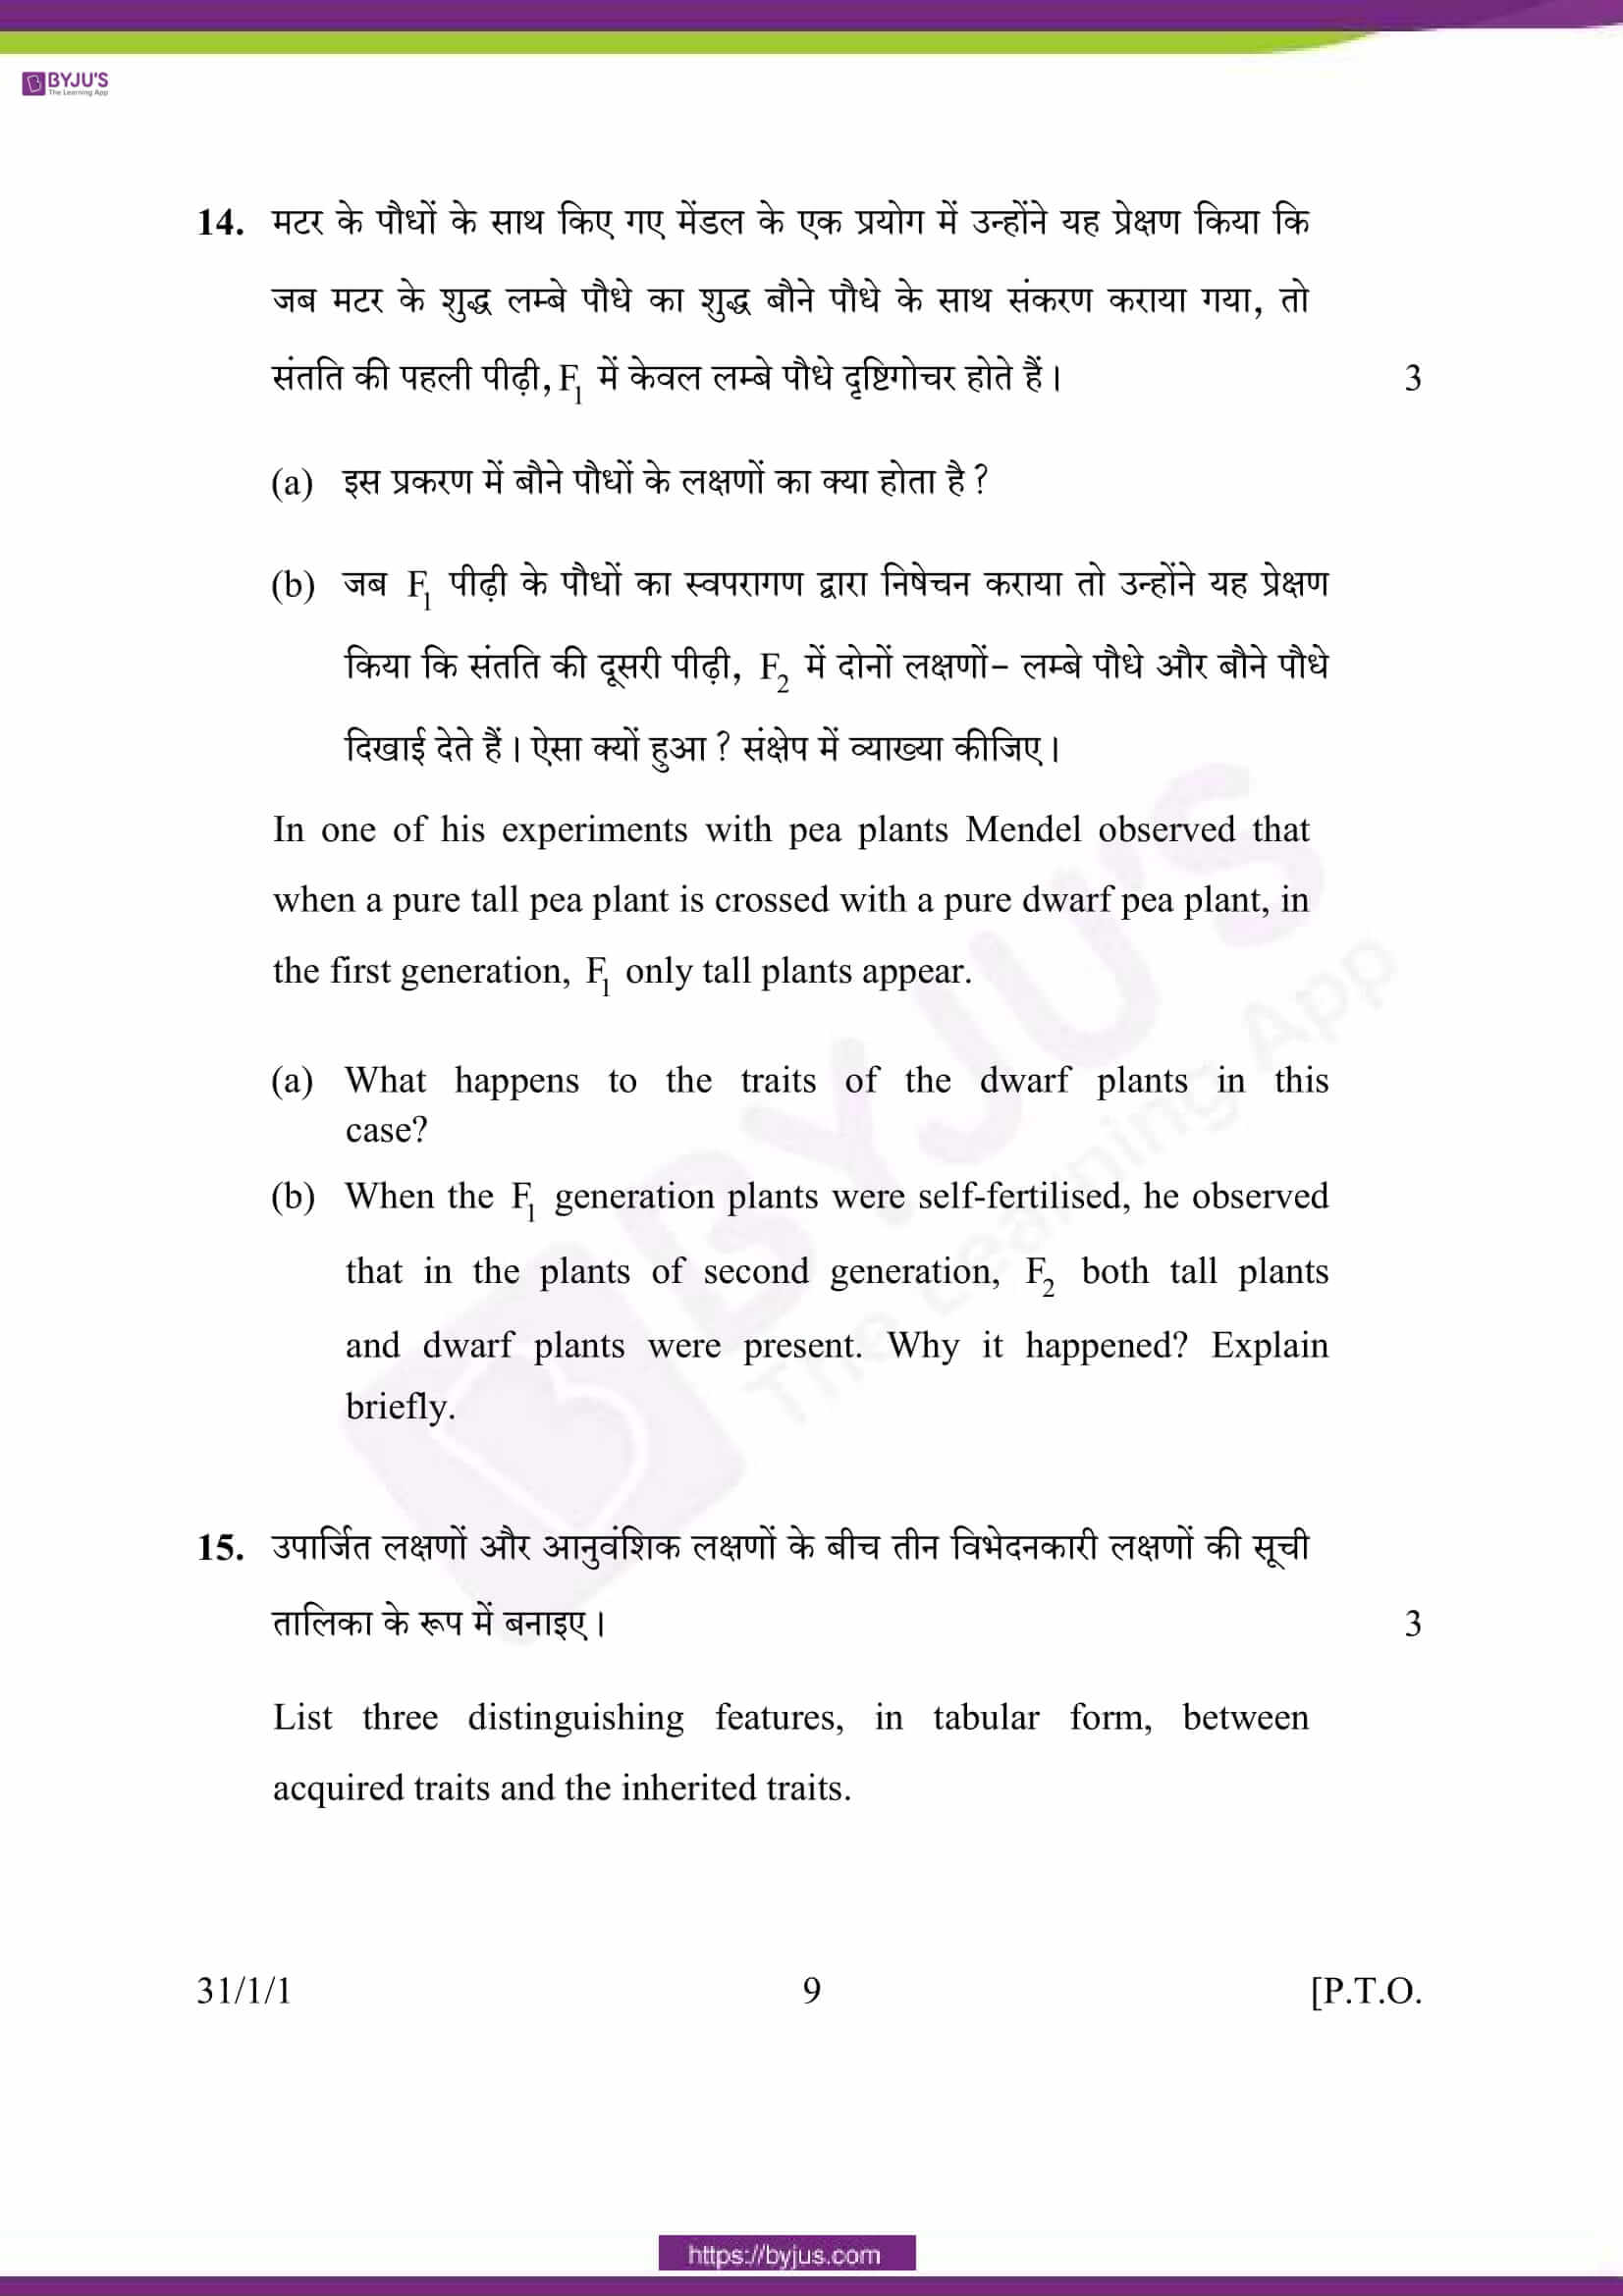 cbse class 10 science question paper 2016